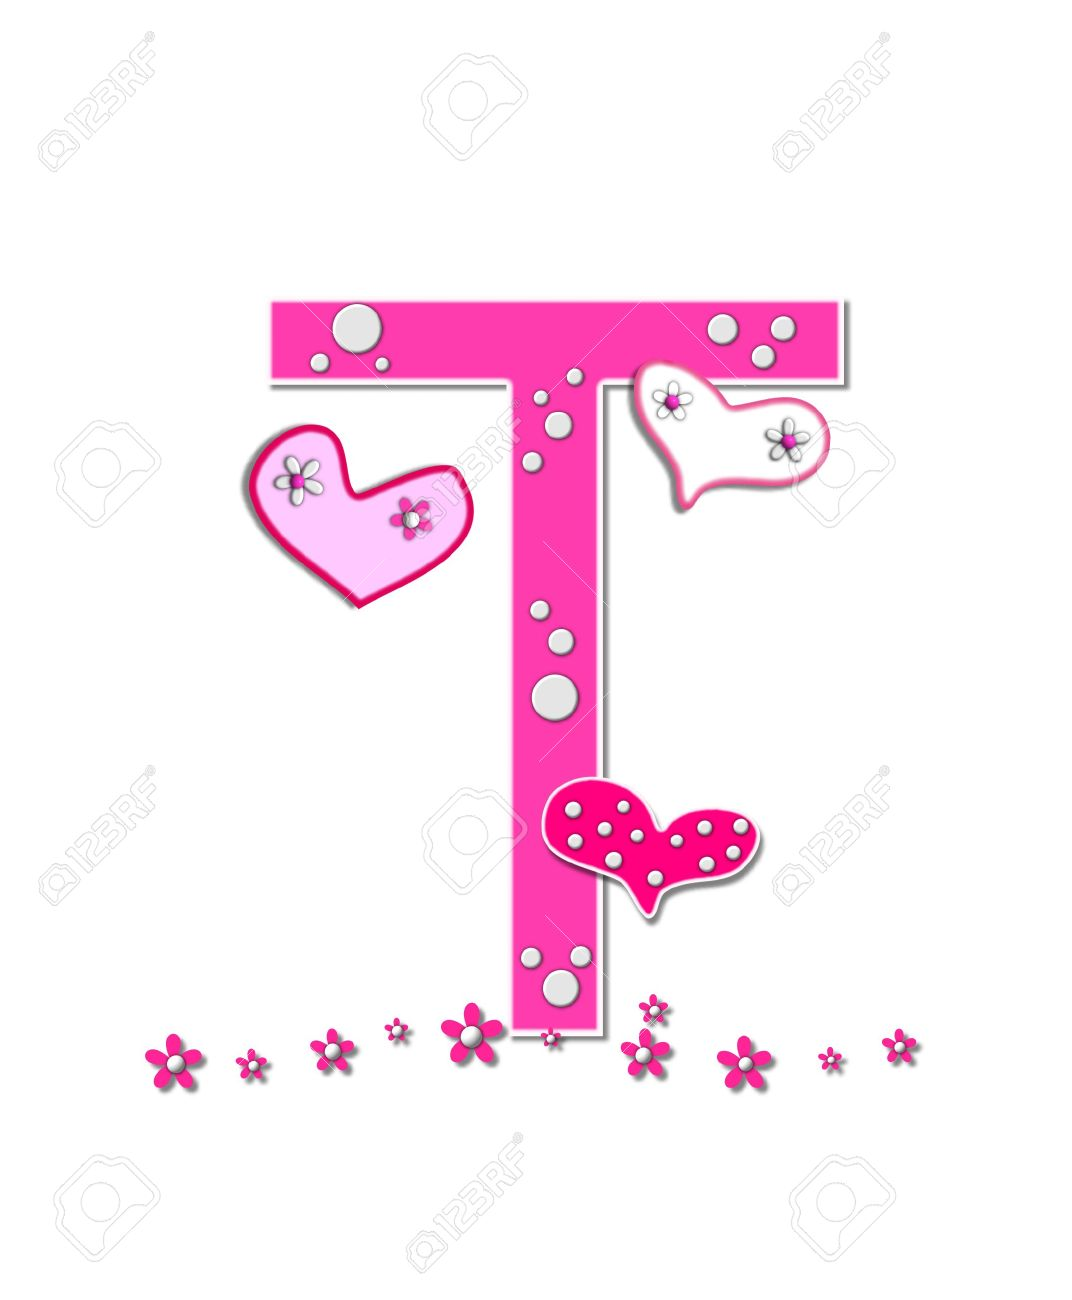 Oslikaj slova  azbuke - Page 19 16321833-The-letter-T-in-the-alphabet-set-Heartfull-is-pink-outlined--Stock-Photo